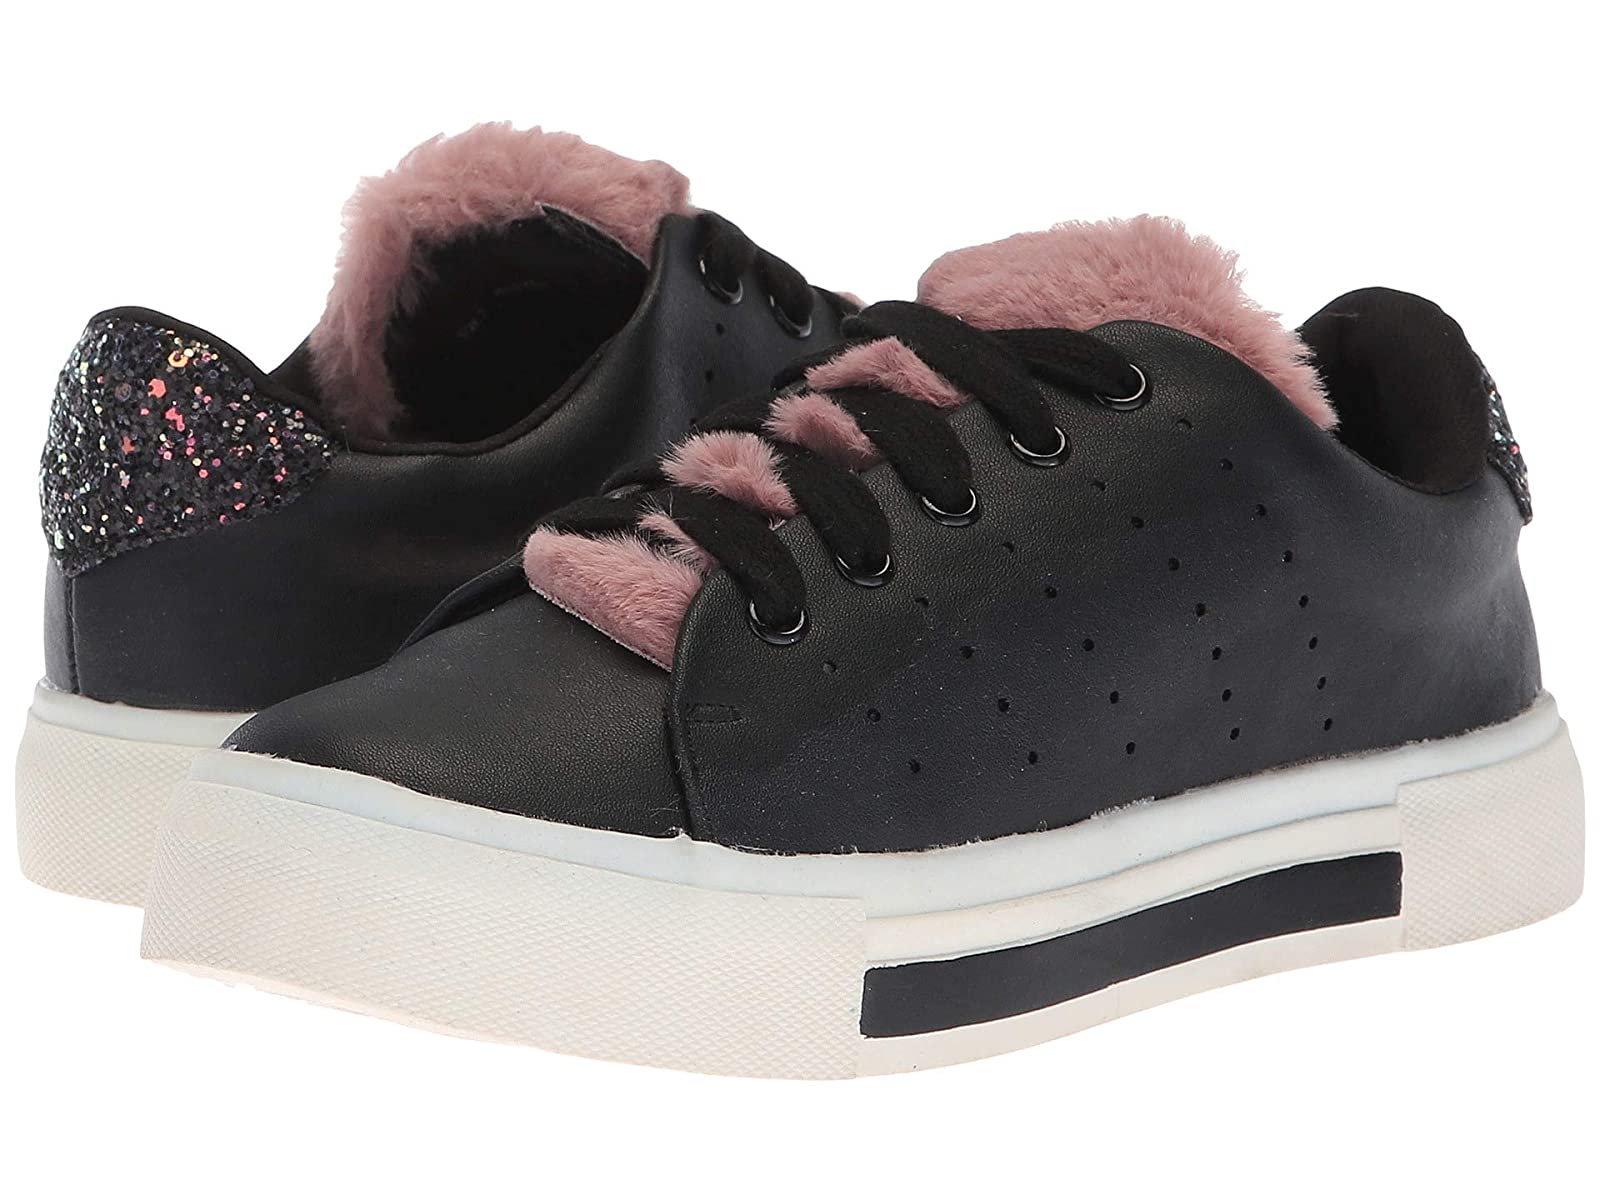 Dolce Vita Kids Cabel (Little Kid/Big Kid)Atmospheric grades have affordable shoes